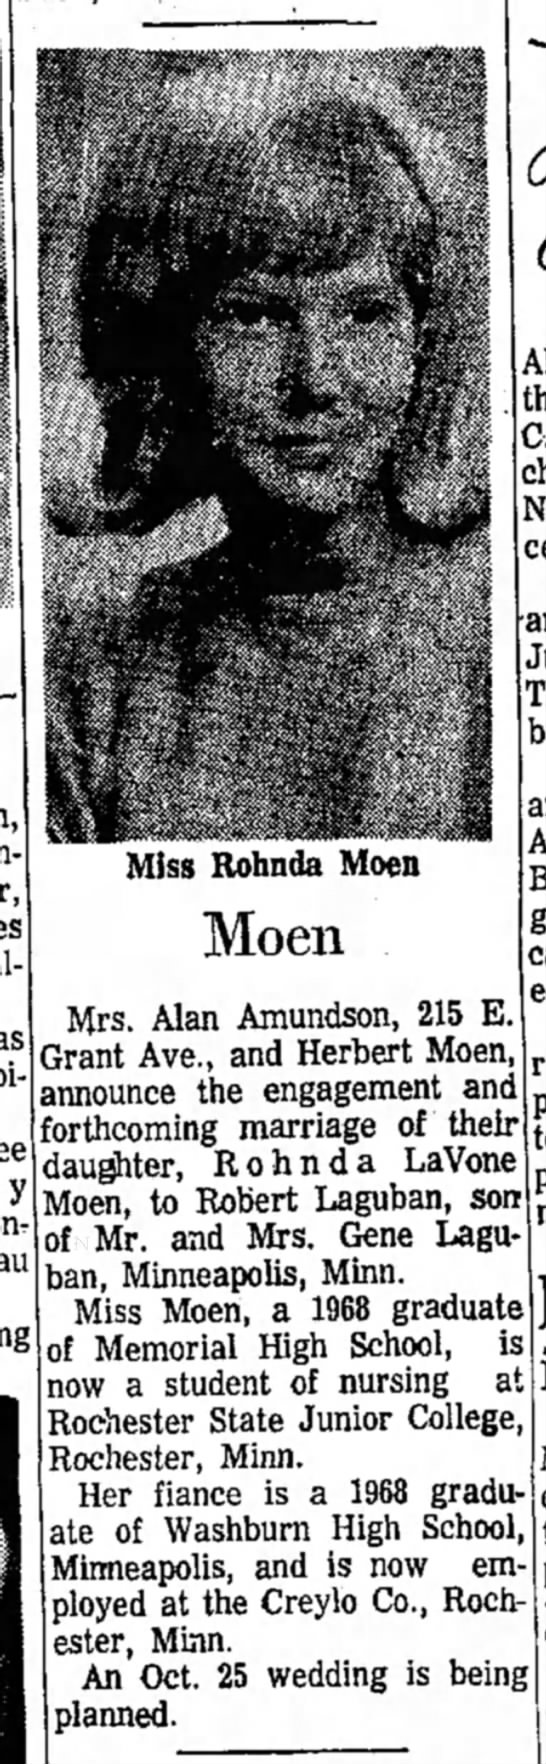 Rohnda Moen engagement to Robert Laguban (daughter of Mrs. Alan Amundson and Herbert Moen) - as Moen Mrs. Alan Amundson, 215 E. Grant Ave.,...